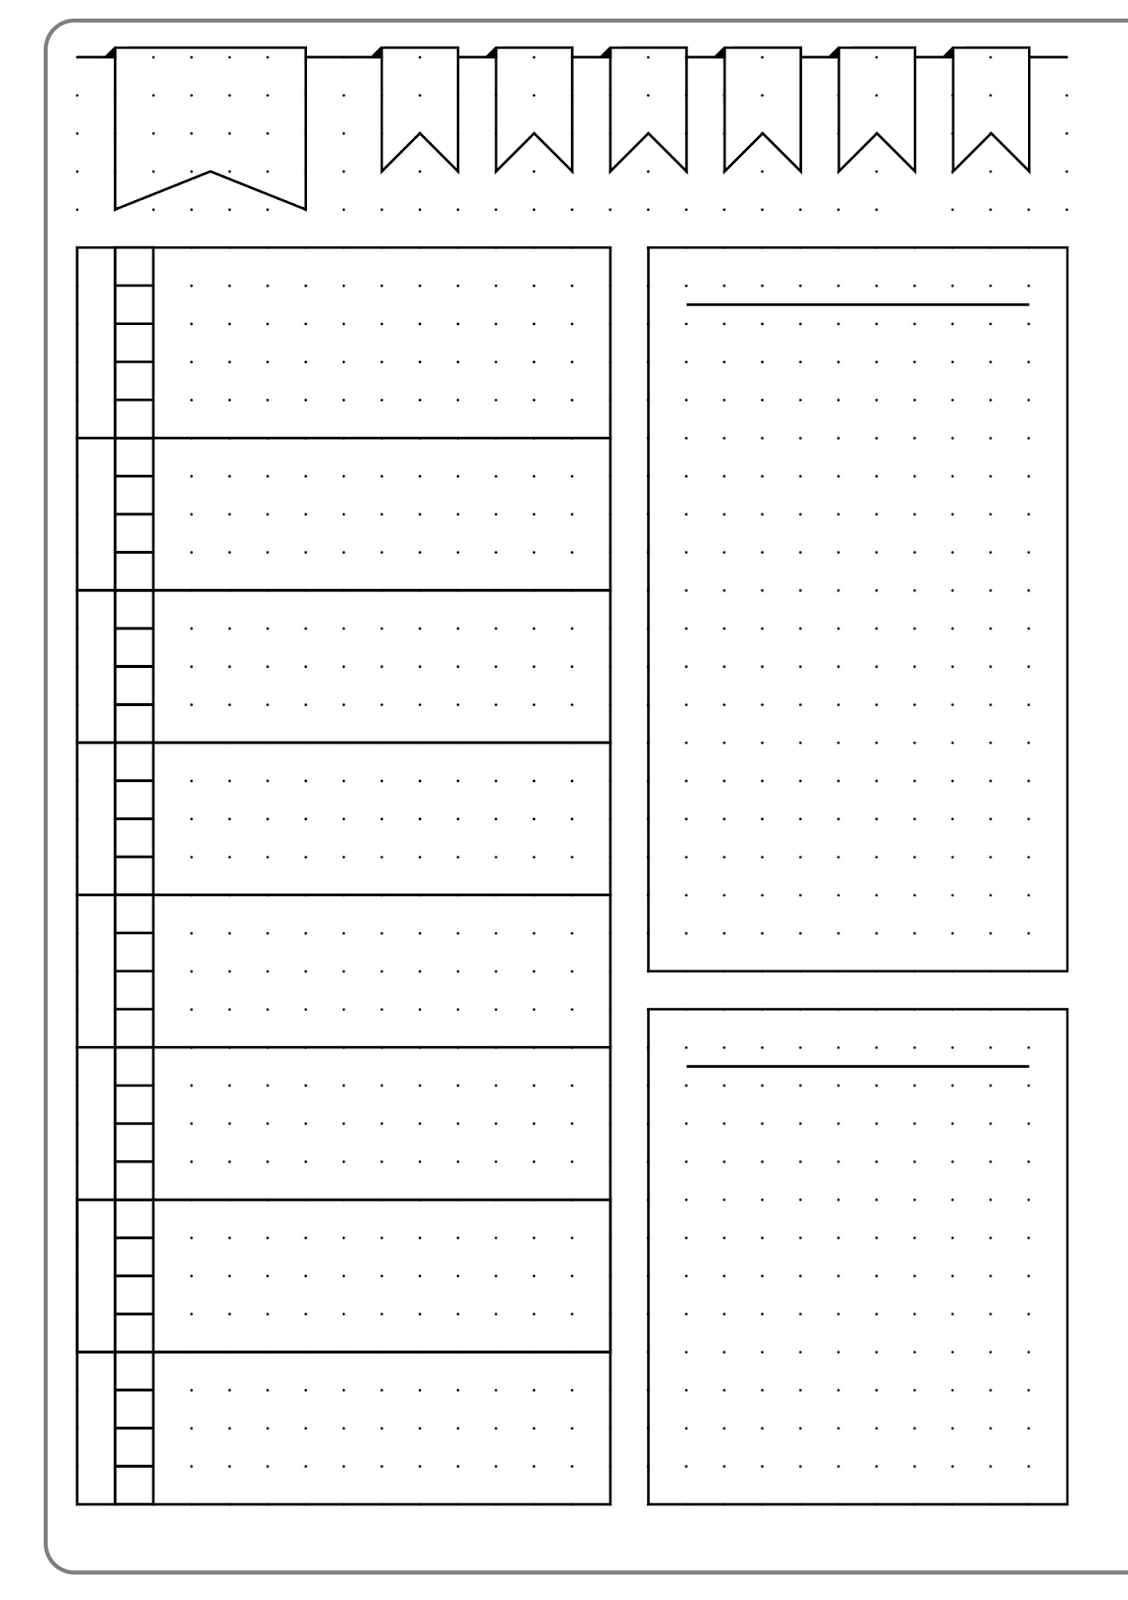 graphic relating to Printable Bullet Journal Paper referred to as Very simple Weekly Design and style Template - Kate Louise Bullet